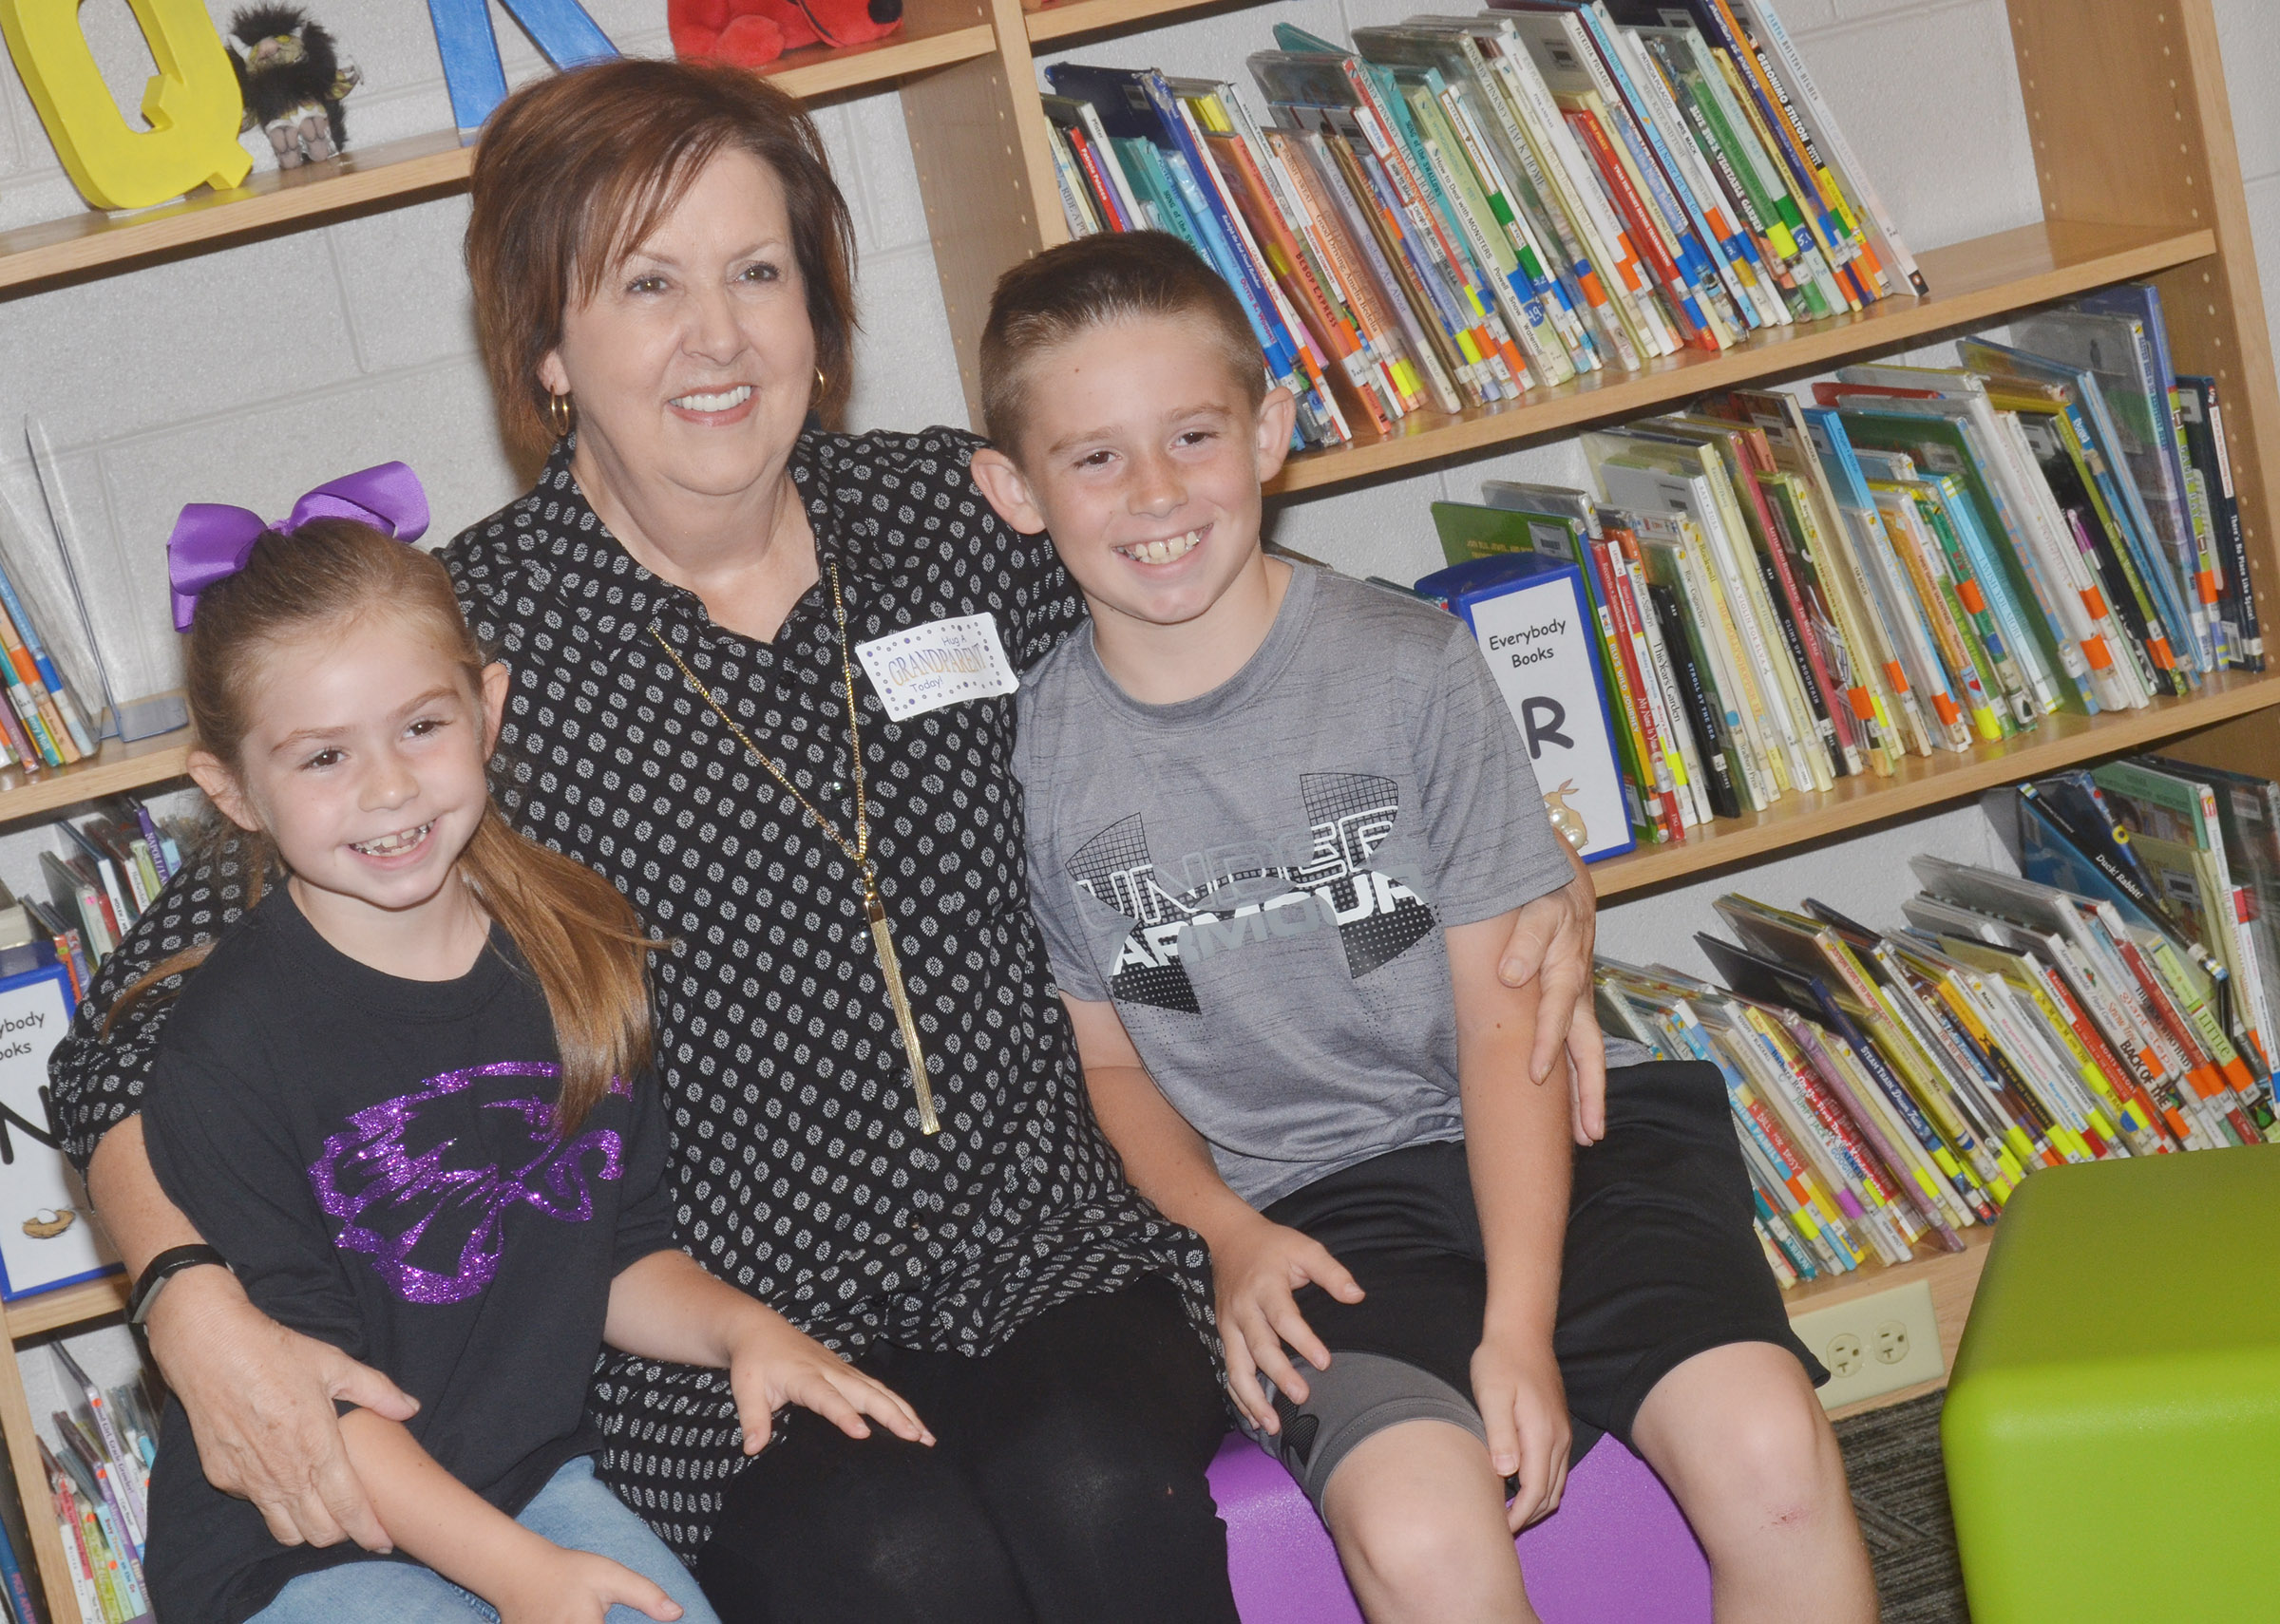 CES second-grader Lainey Price, at left, and third-grader Lanigan Price pose for a photo with their grandmother.